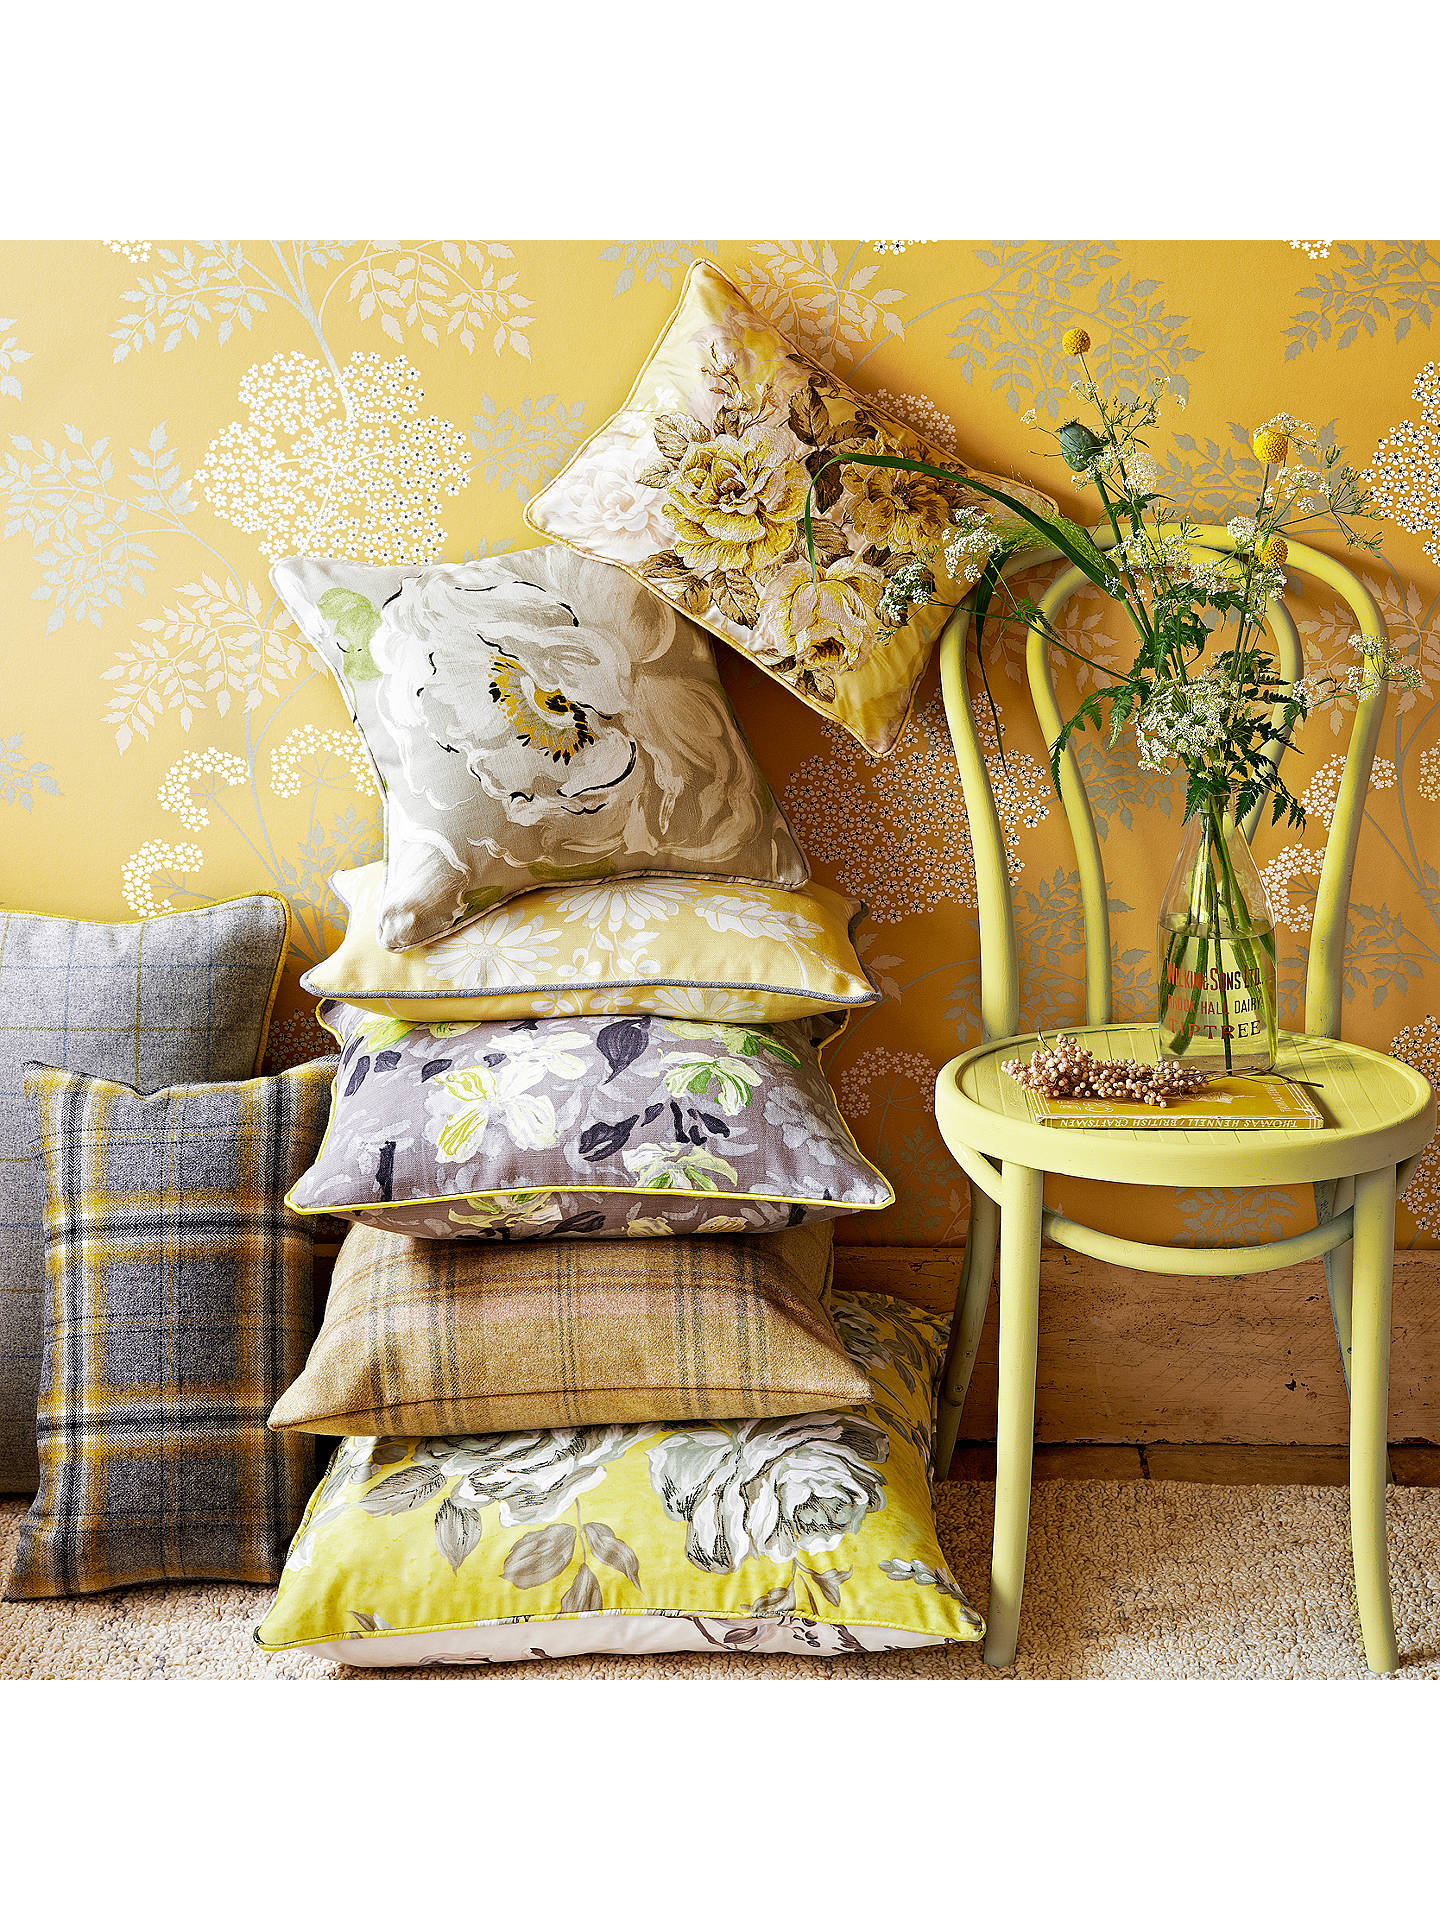 Buy Sanderson Cow Parsley Wallpaper, DOPWCO105, Chinese Yellow Online at johnlewis.com